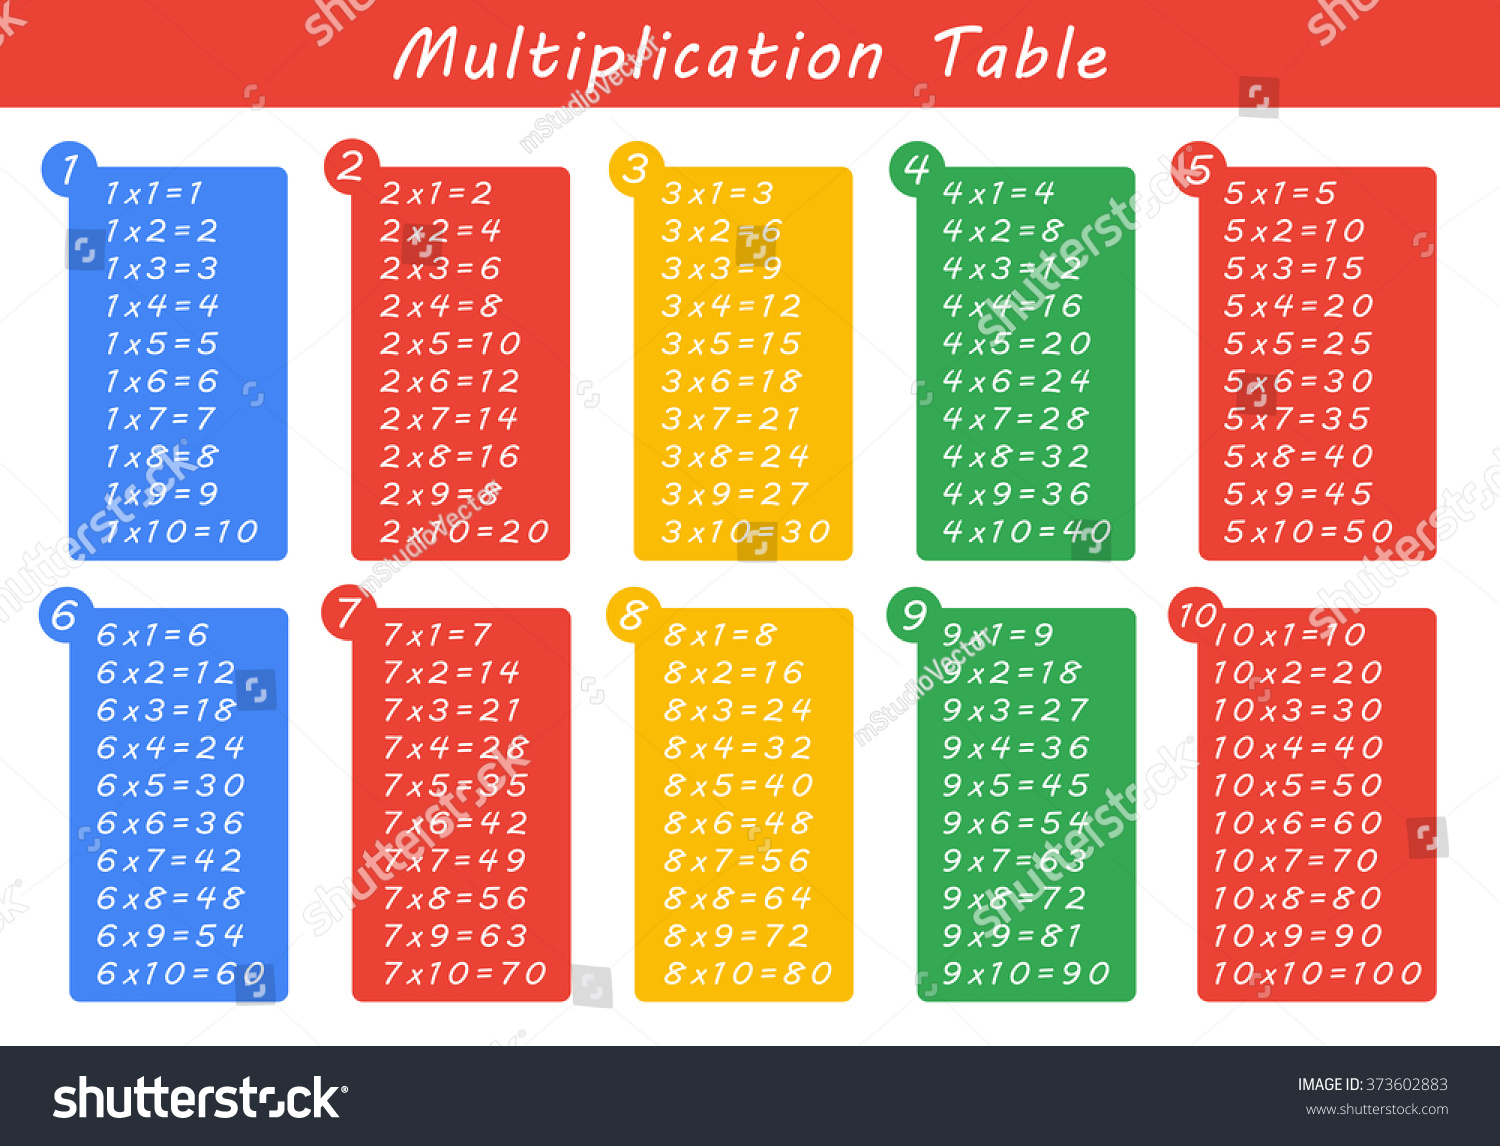 Colorful multiplication table between 1 10 stock vector 373602883 colorful multiplication table between 1 to 10 as educational material gamestrikefo Choice Image